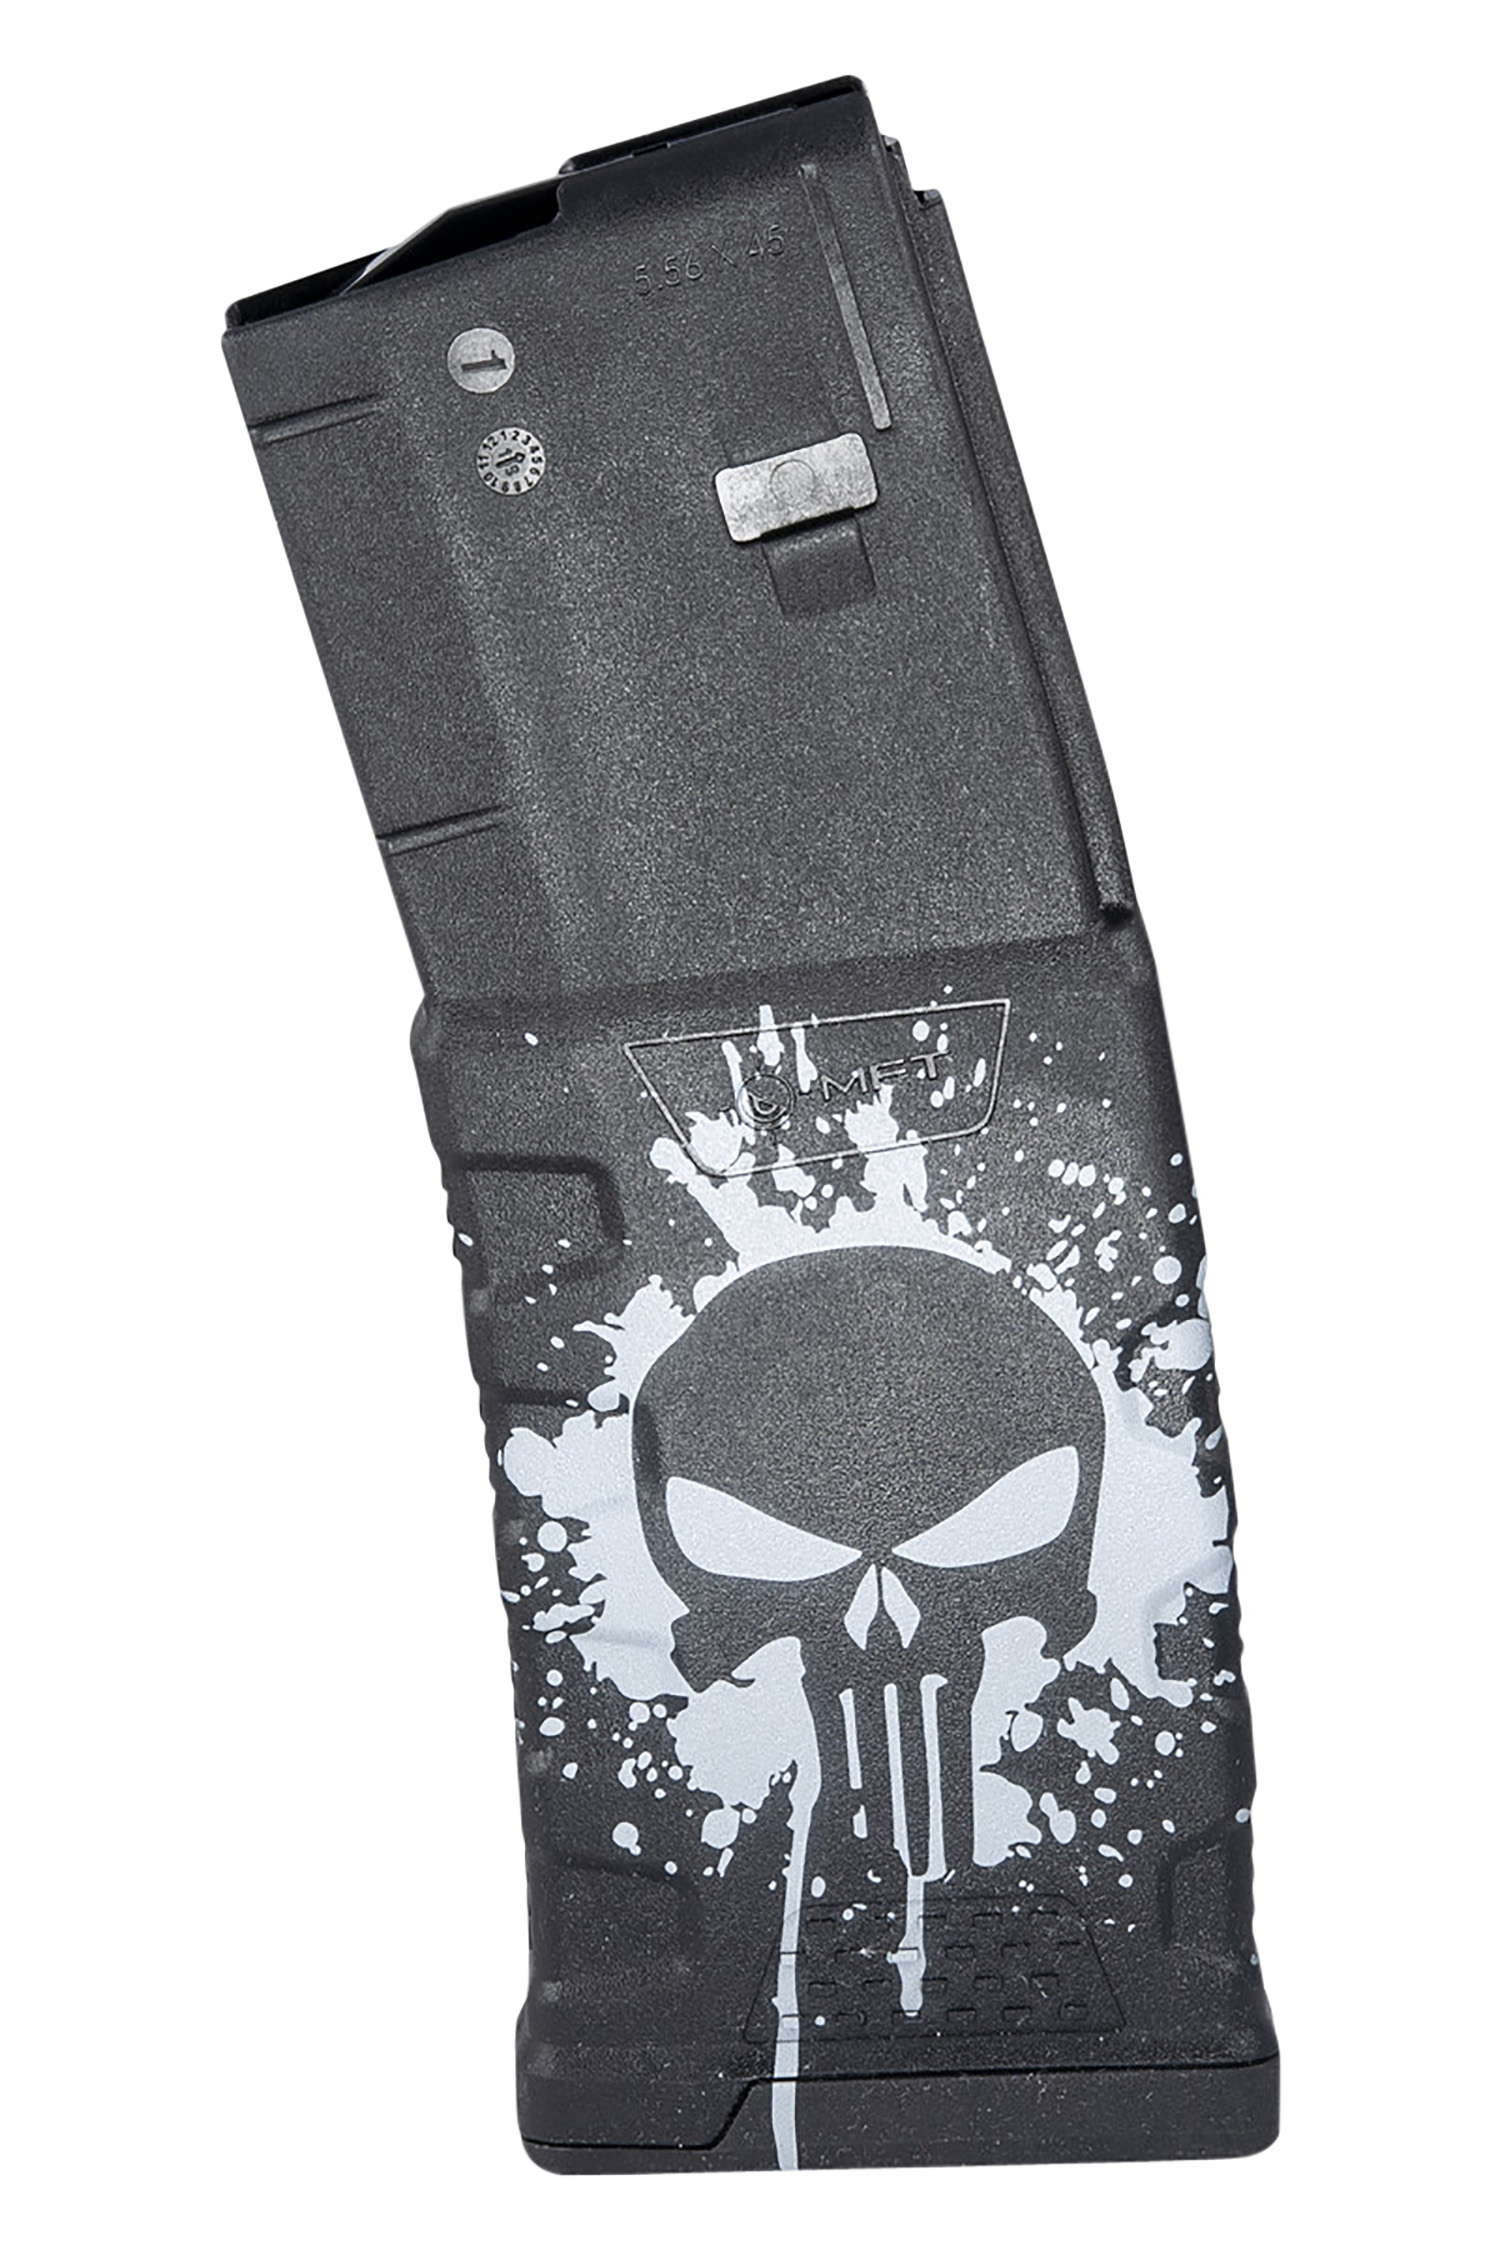 Mission First Tactical EXDPM556-PSS-WH Extreme Duty  223 Rem, 5.56x45mm NATO AR-15, M4 30rd Black with White Punisher Skull Splatter Detachable